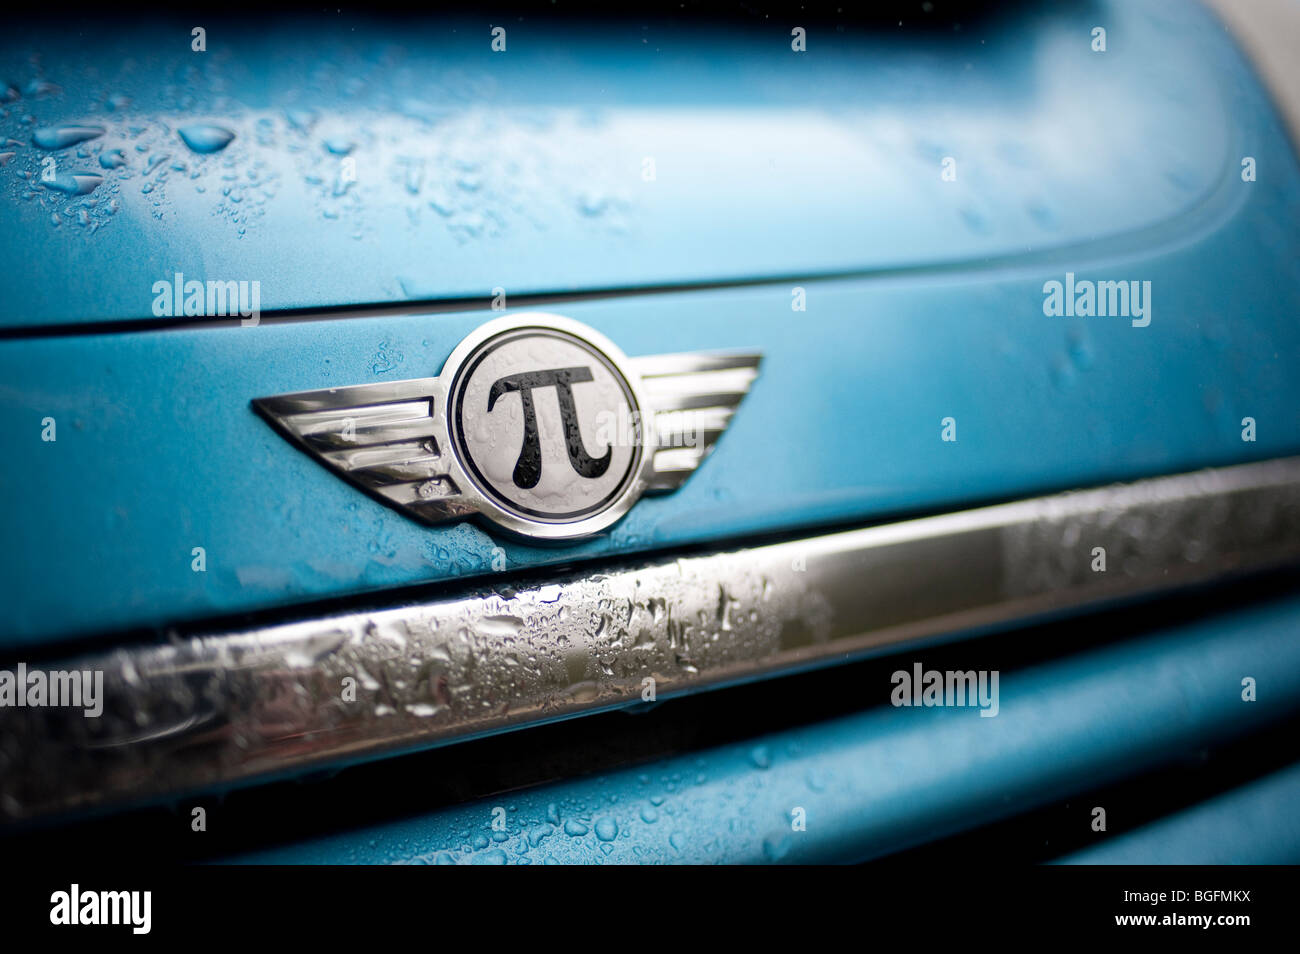 Pi symbol stock photos pi symbol stock images alamy mini cooper s with a pi mathematical symbol stock image biocorpaavc Images